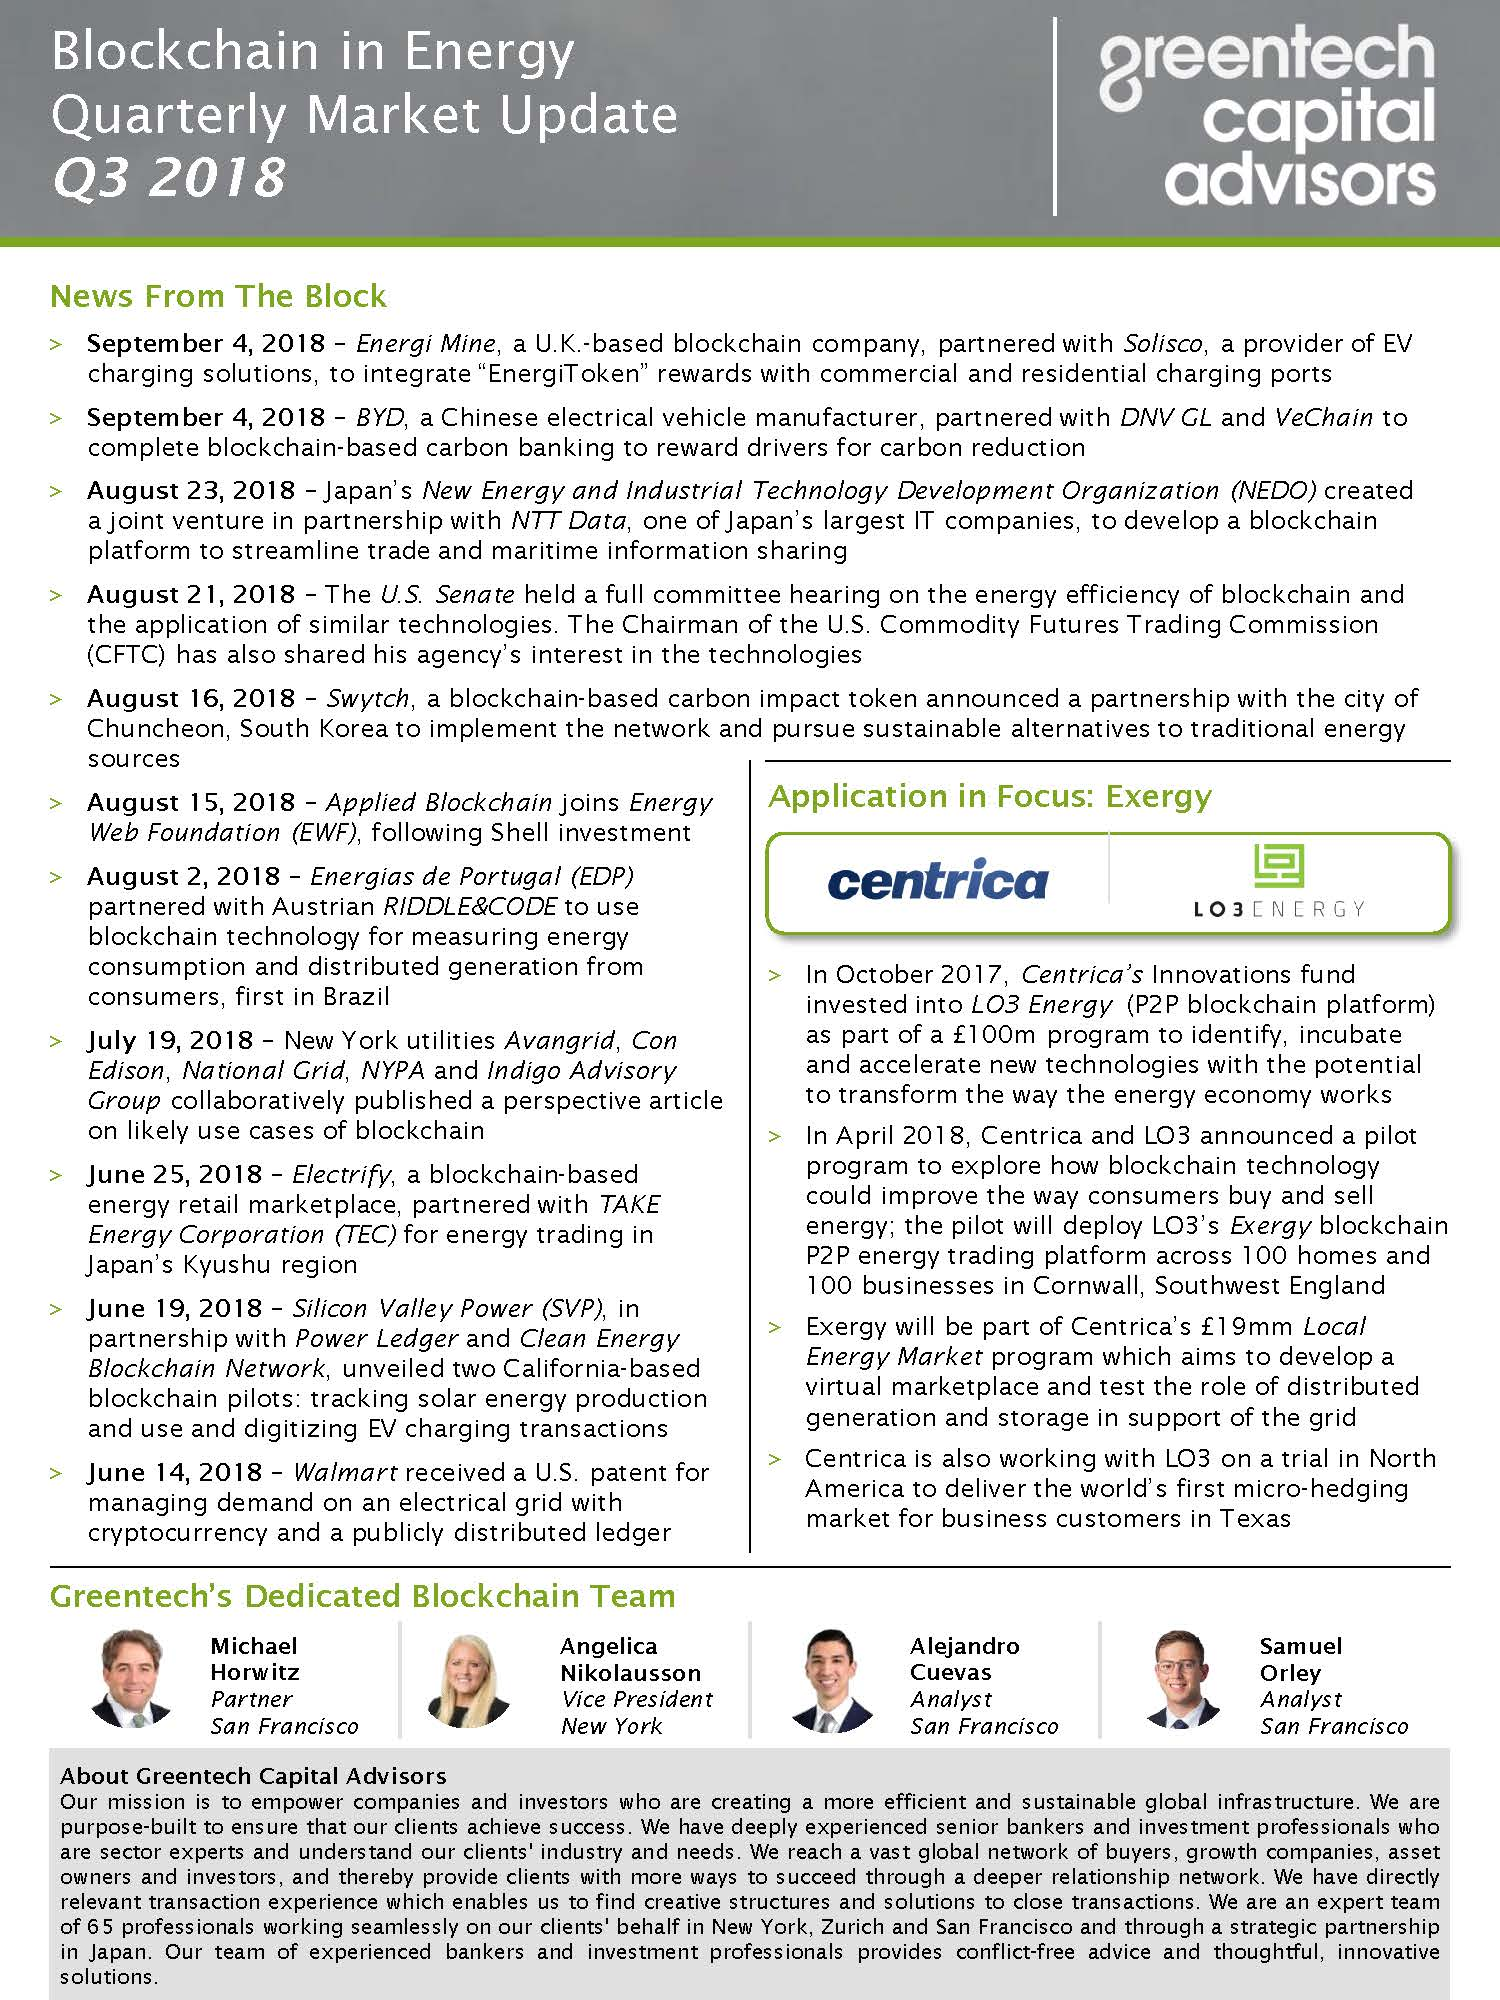 Sustainable Food & AgTech Market Update Newsletter - July 2018